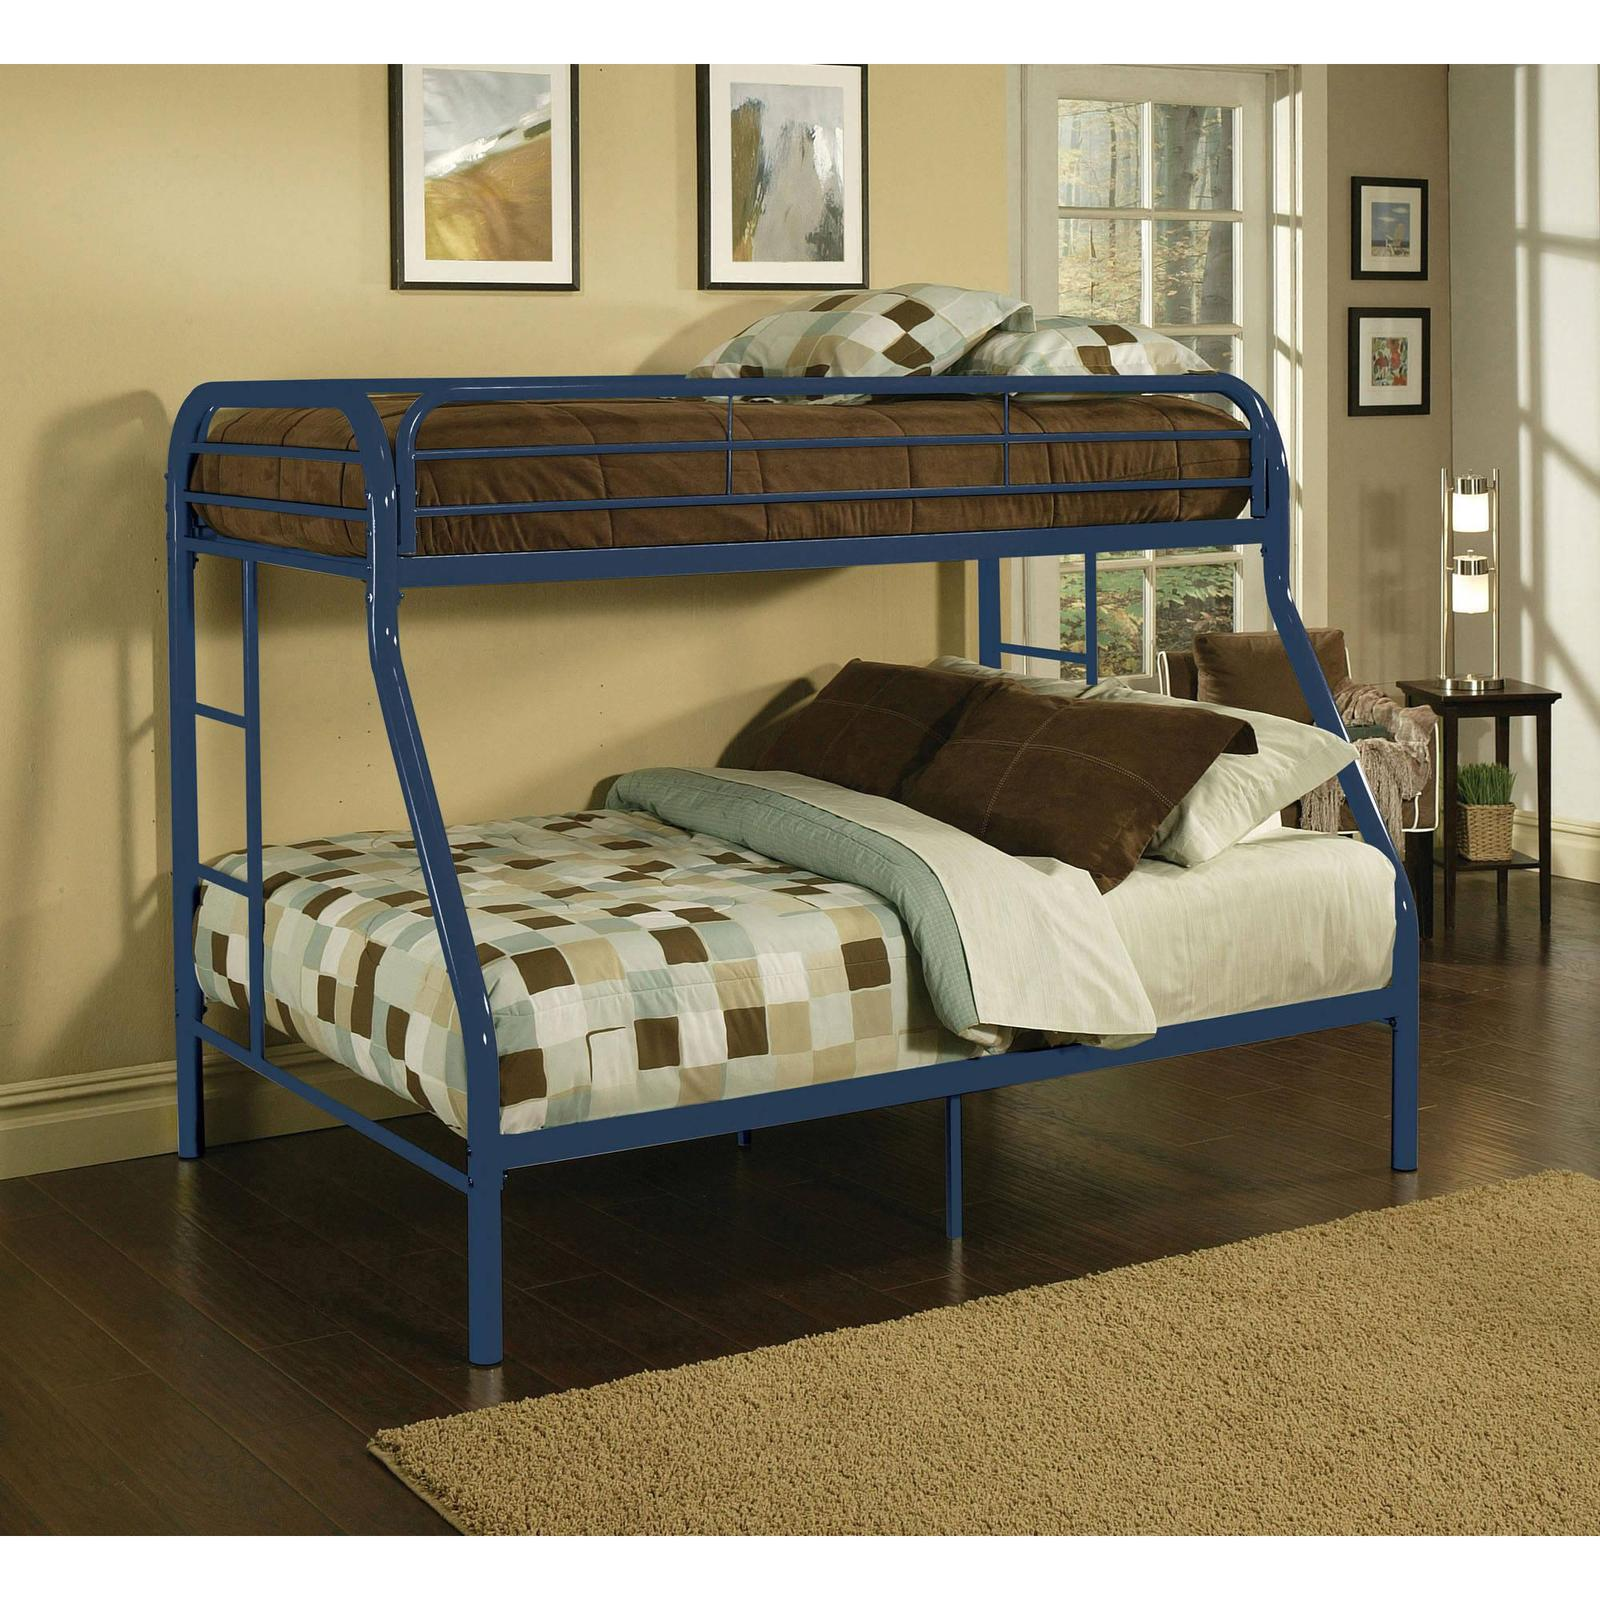 Blue Metal Bunk Bed Twin Over Full